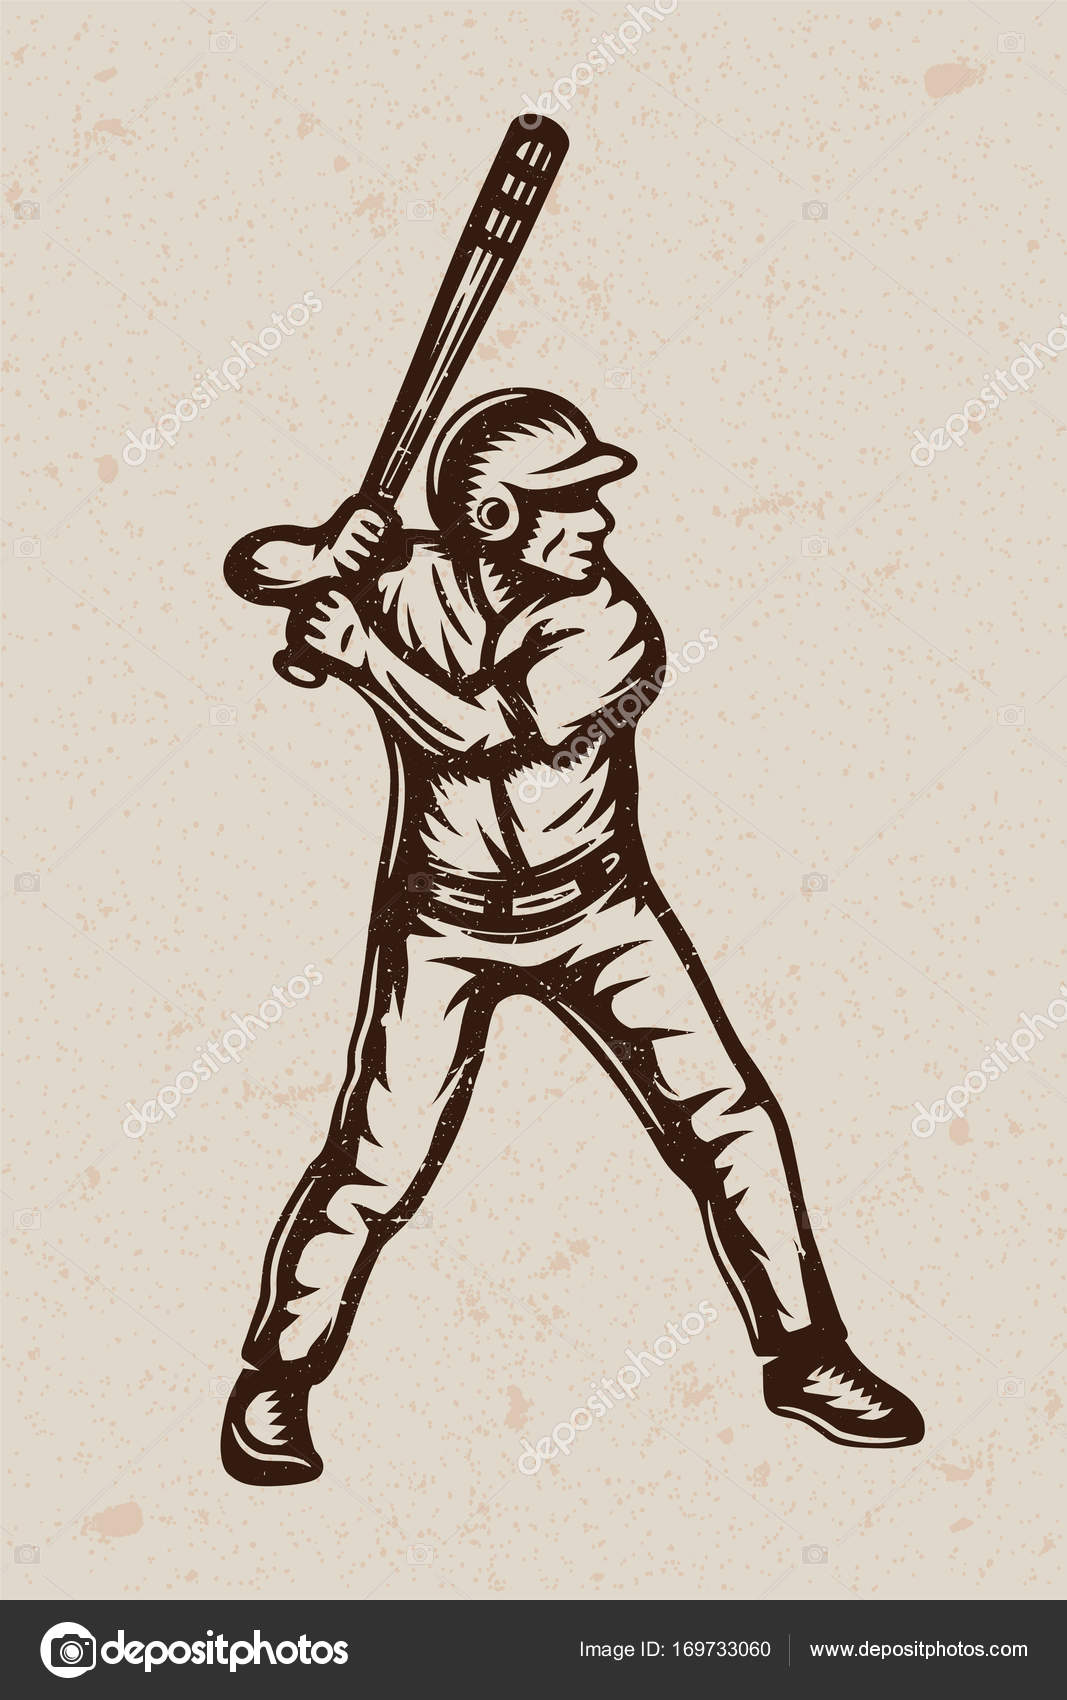 Vintage Baseball Poster Template Banner In Retro Style Graphic Art Vector Illustration By De Malia